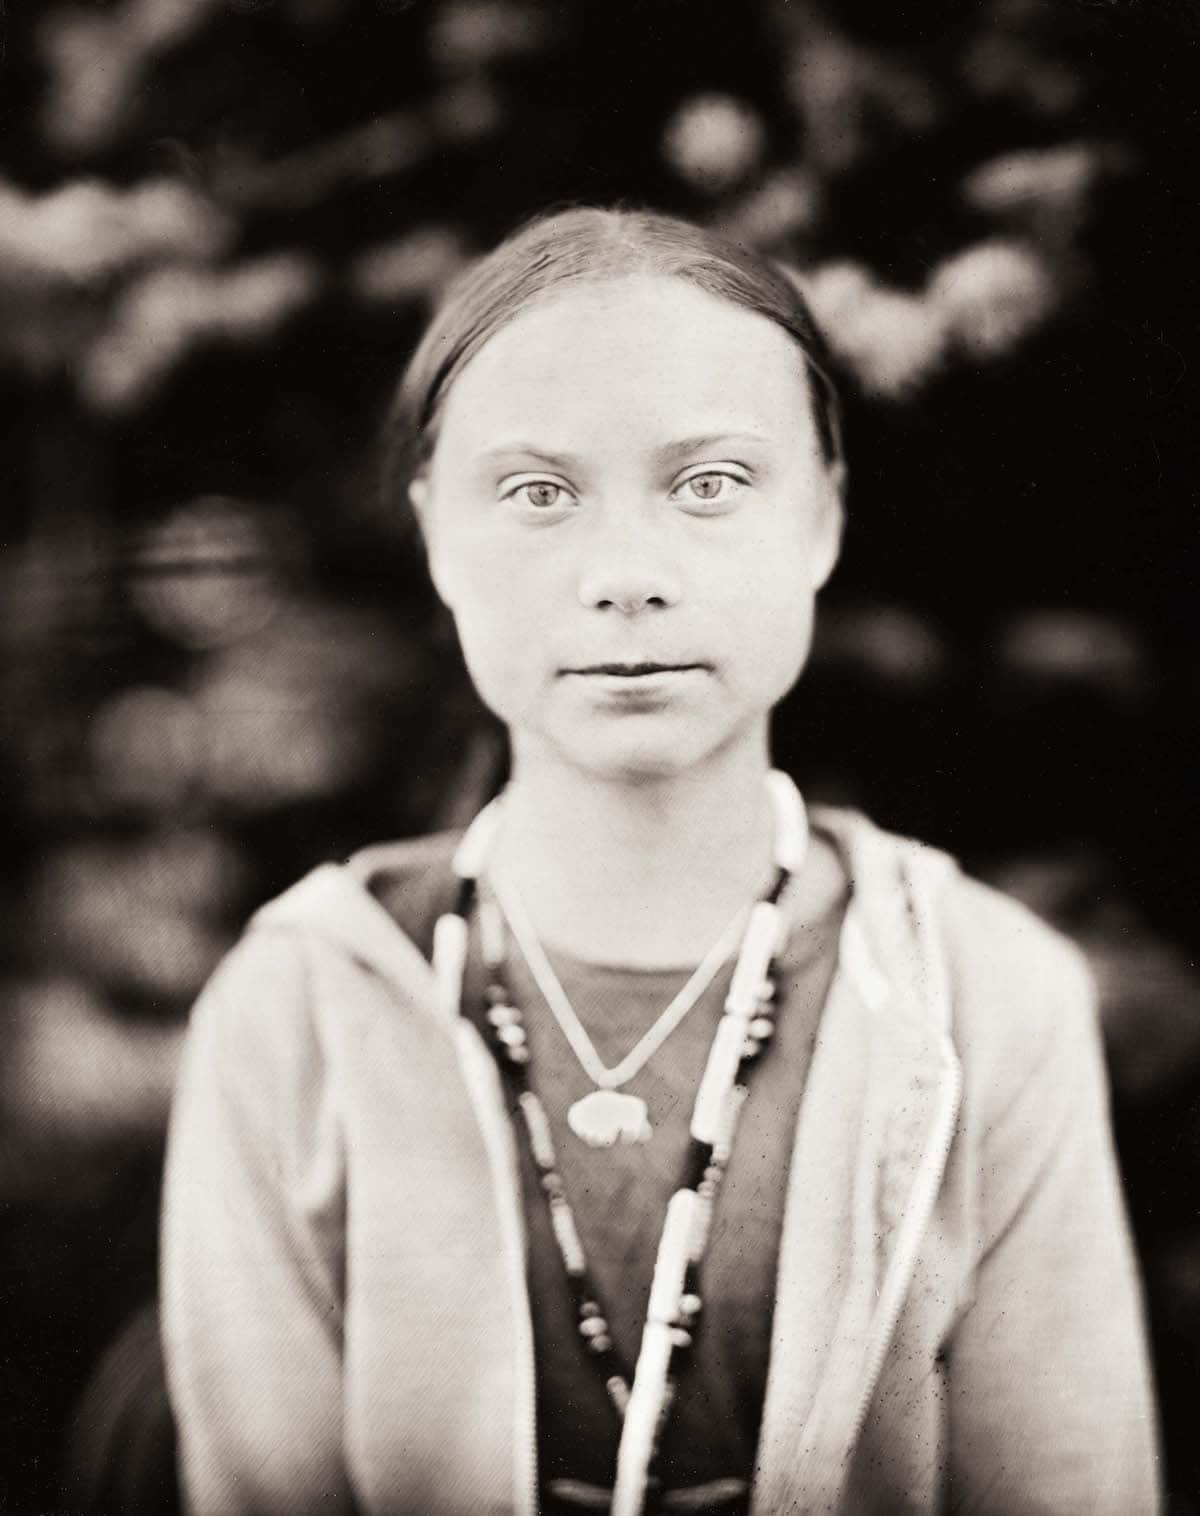 Portrait of Greta Thunberg by Wet Plate Photographer Shane Balkowitsch